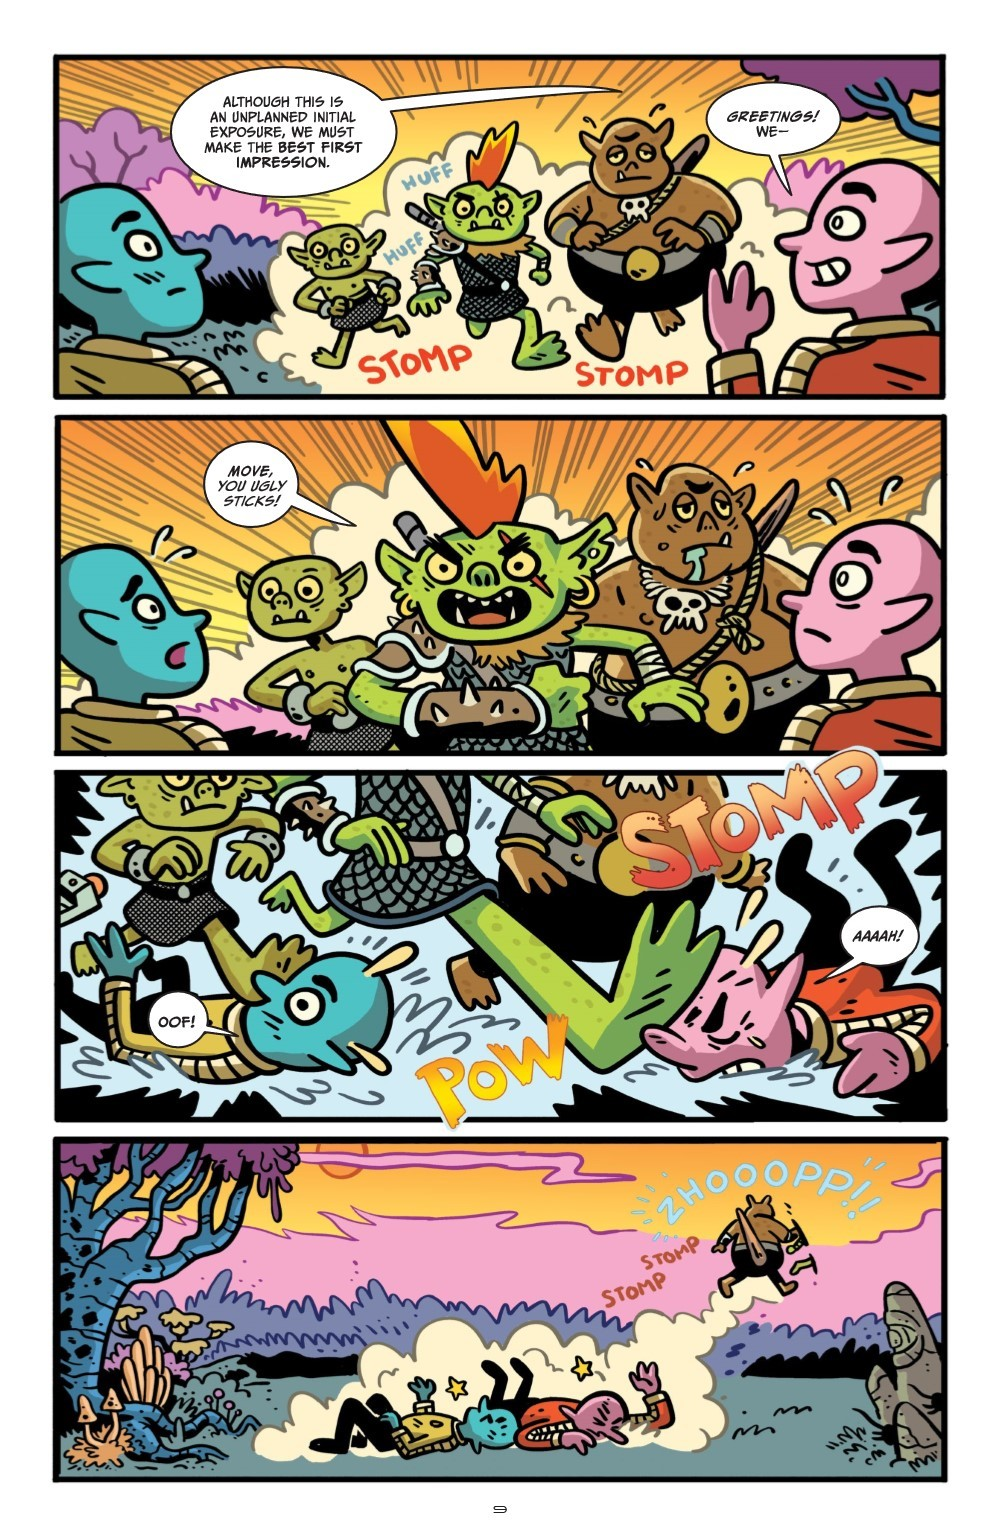 ORCSINSPACE-V1-REFERENCE-010 ComicList Previews: ORCS IN SPACE VOLUME 1 TP